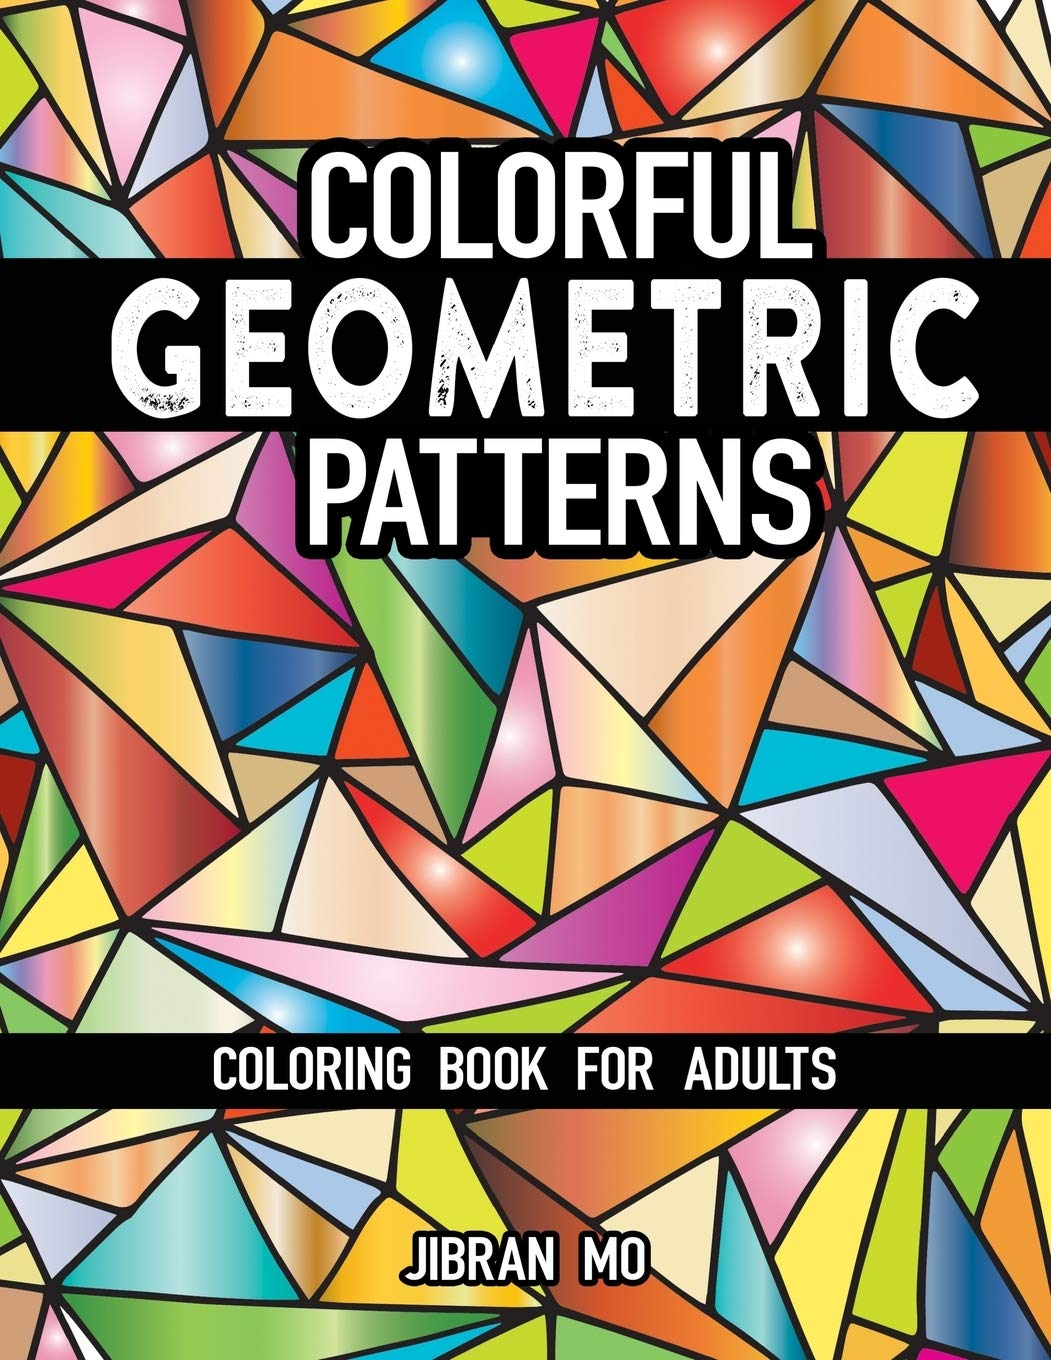 Colorful Geometric Patterns Coloring Book For Adults Cool Creative Geometric Graphic Shape Designs Colouring Patterns Fun Easy Stress Relief Relaxing Mindfulness Gift Mo Jibran 9798645212278 Amazon Com Books